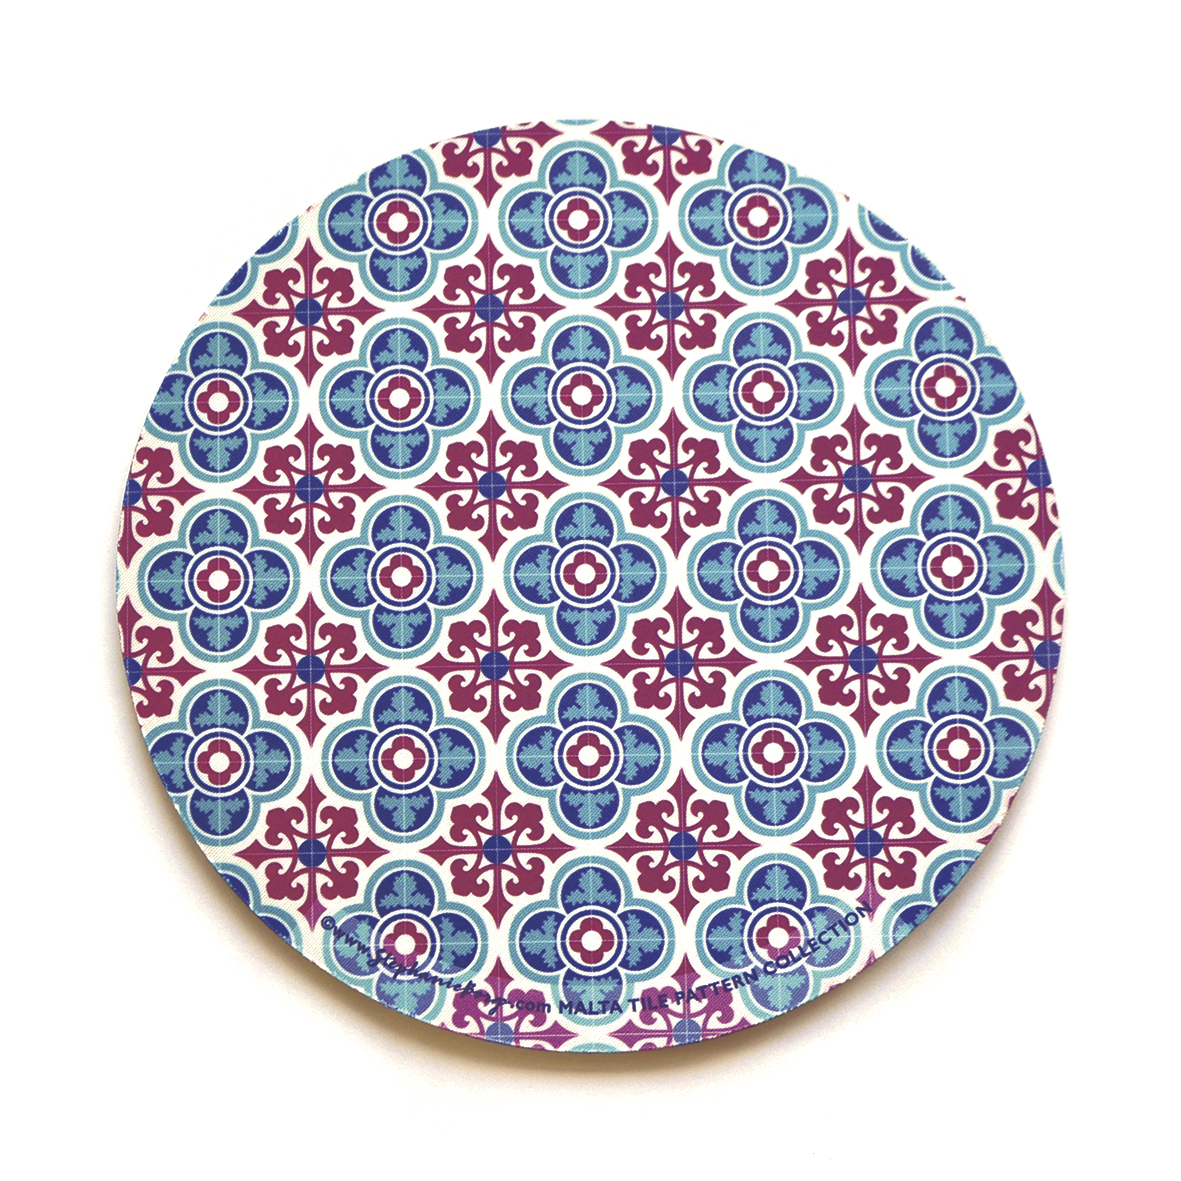 Mousepad with Maltese Tile Patterns, pattern no.3